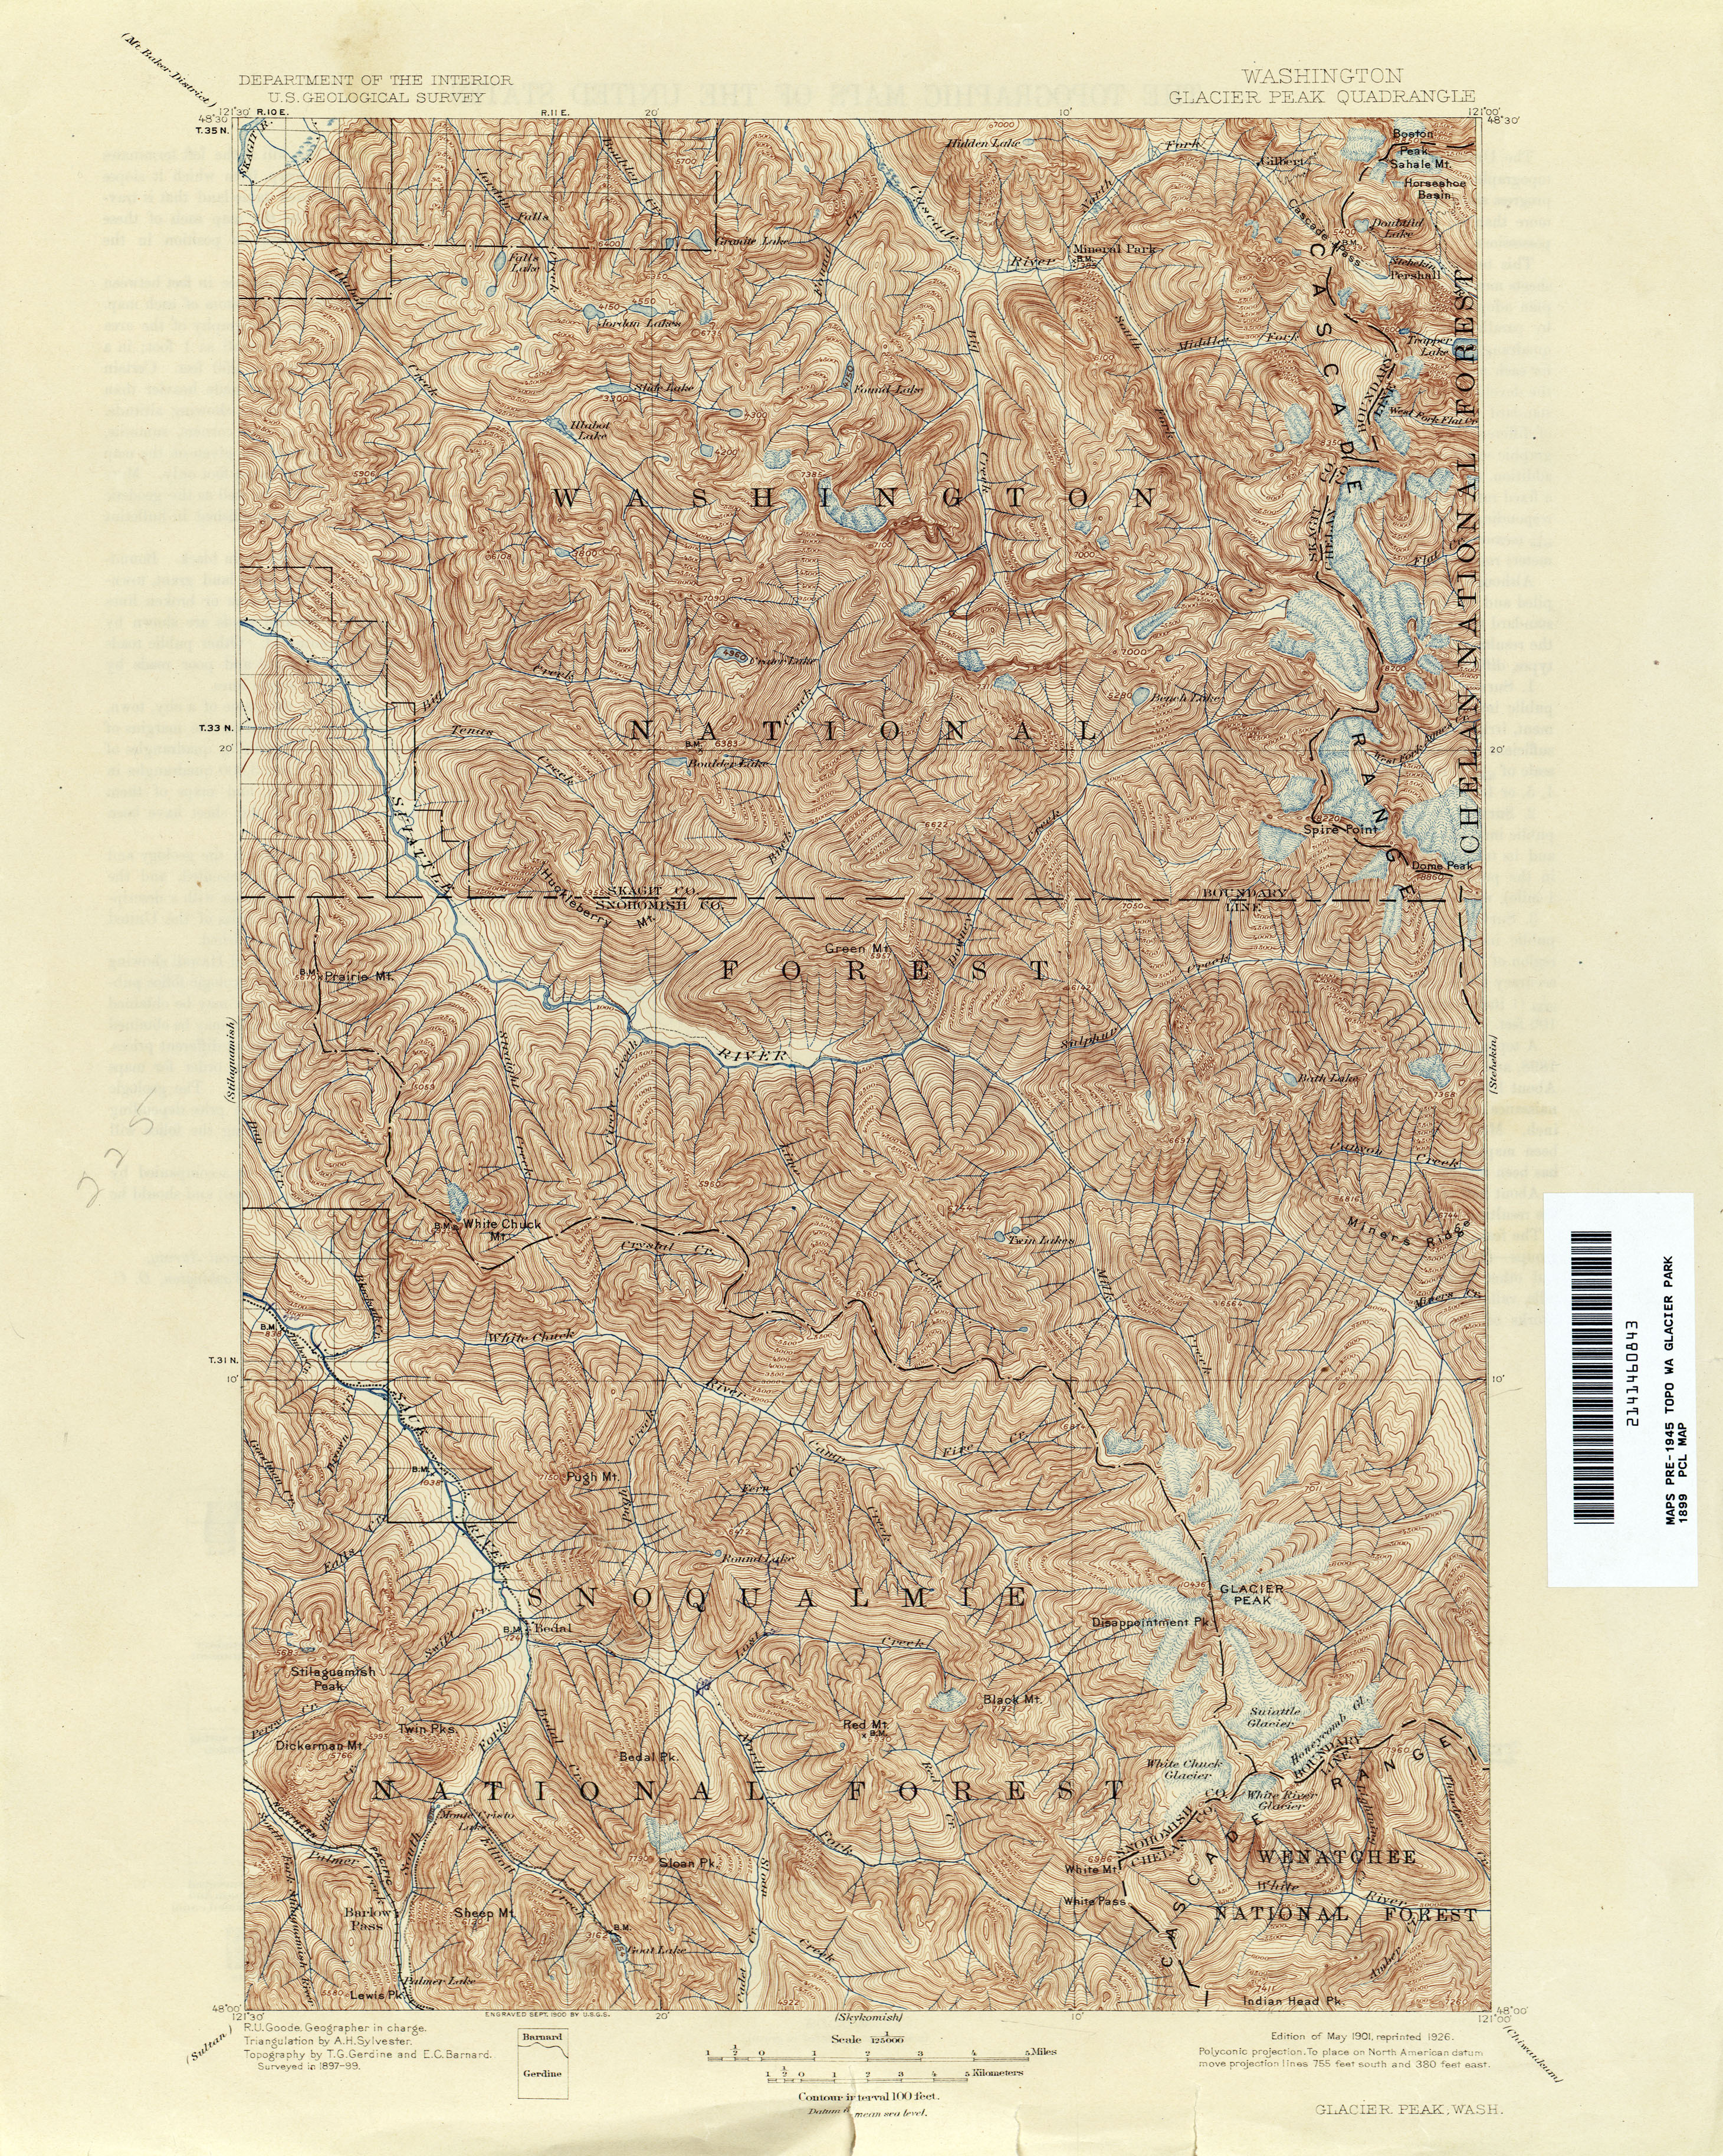 Washington Historical Topographic Maps PerryCastañeda Map - Eastern us topographic map